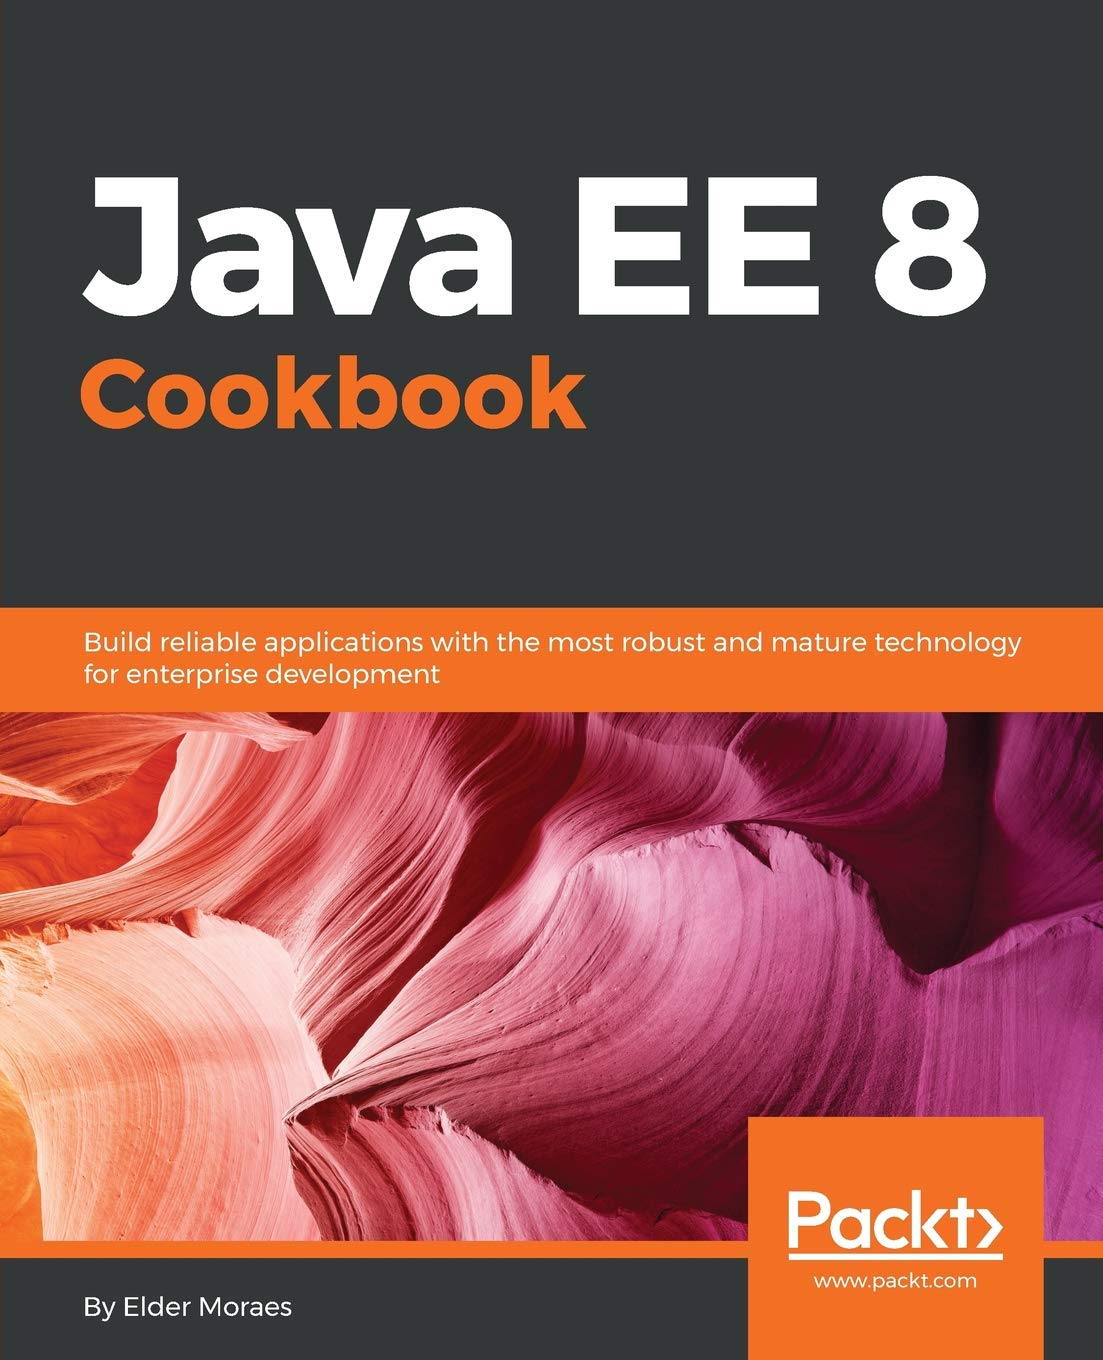 Java EE 8 Cookbook: Build reliable applications with the